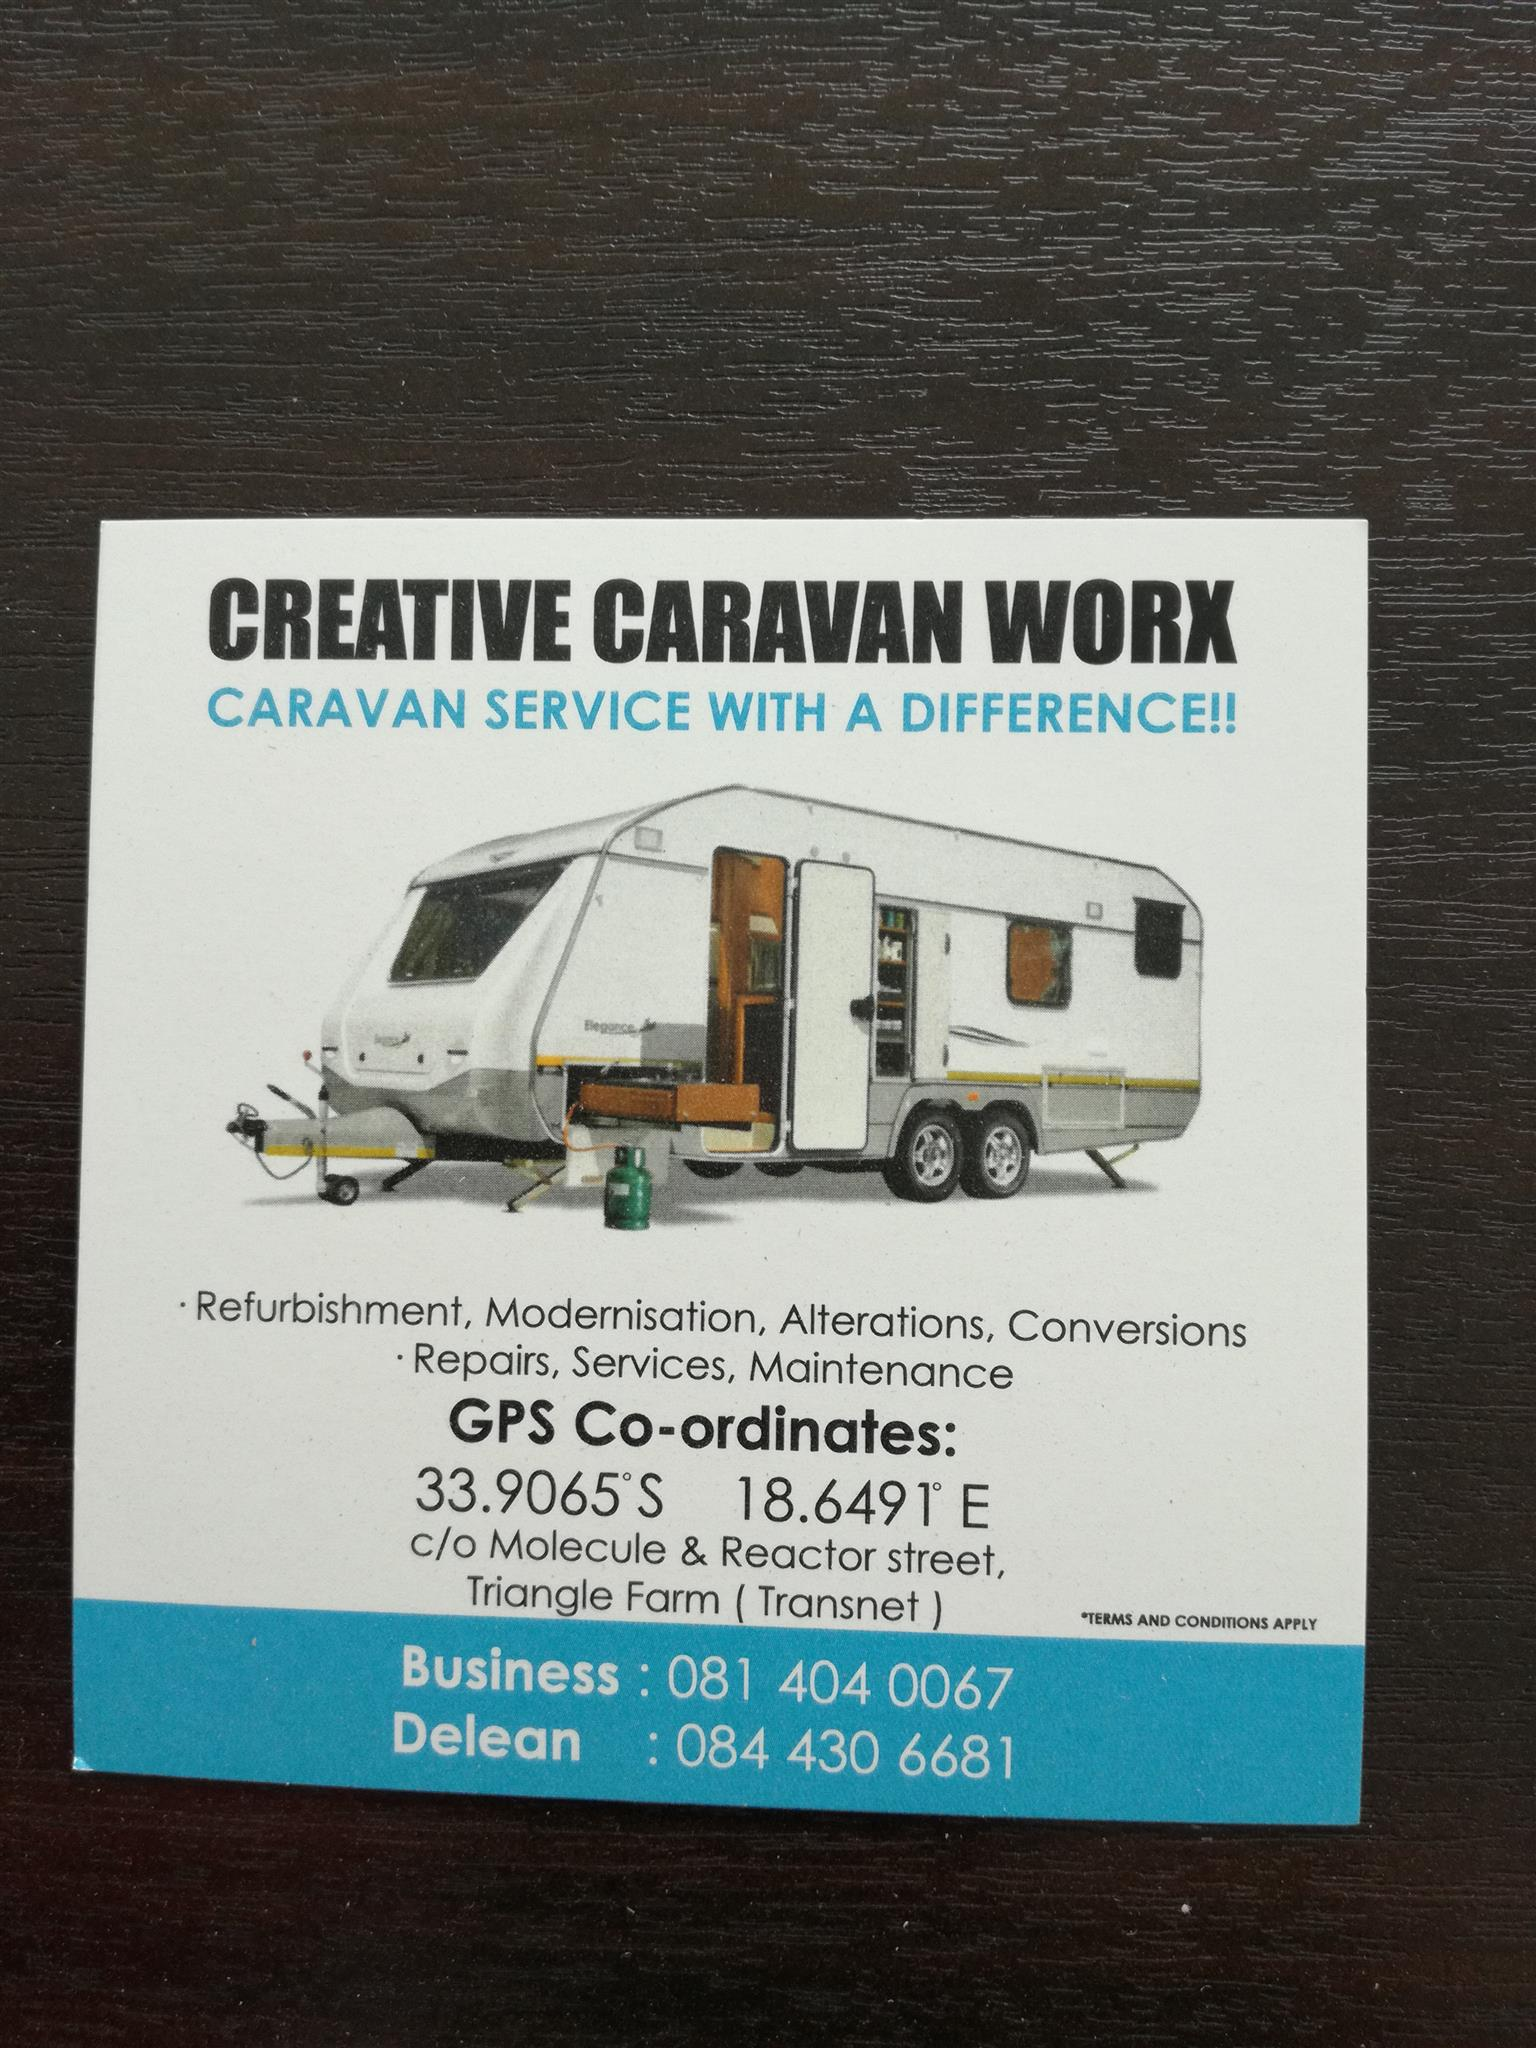 Caravan service, repair and modifications